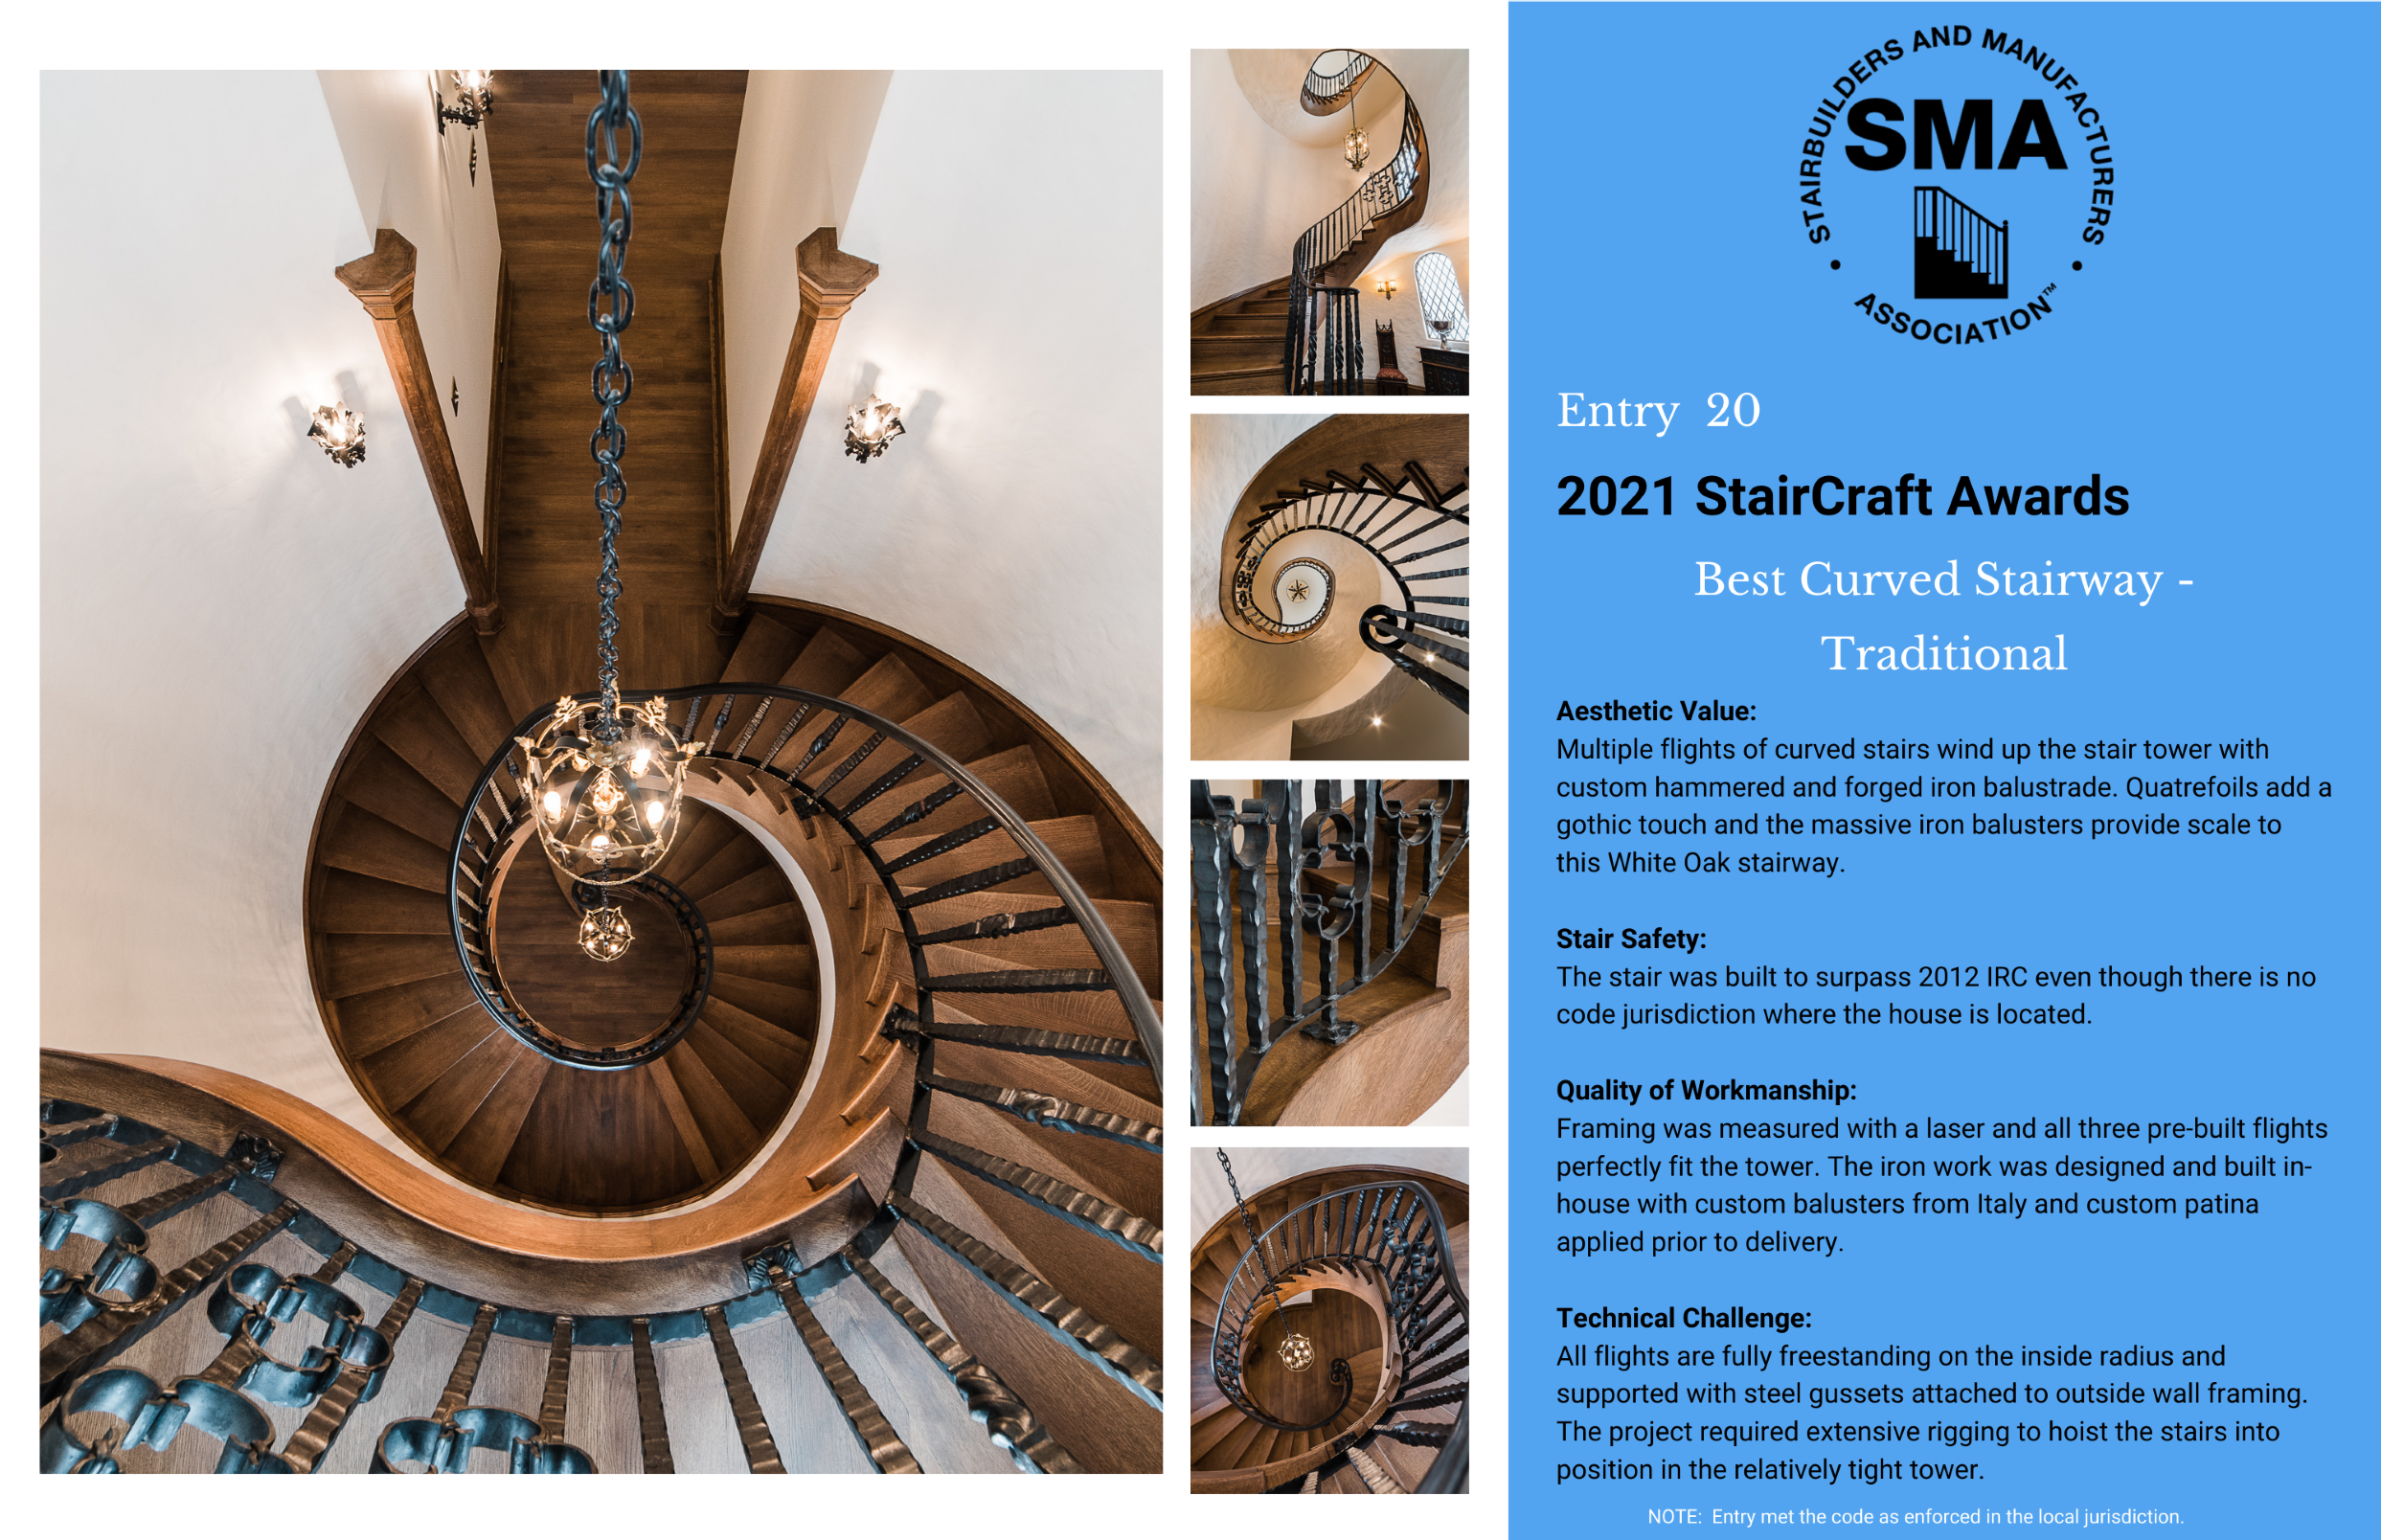 2021 StairCraft Awards Entry 20